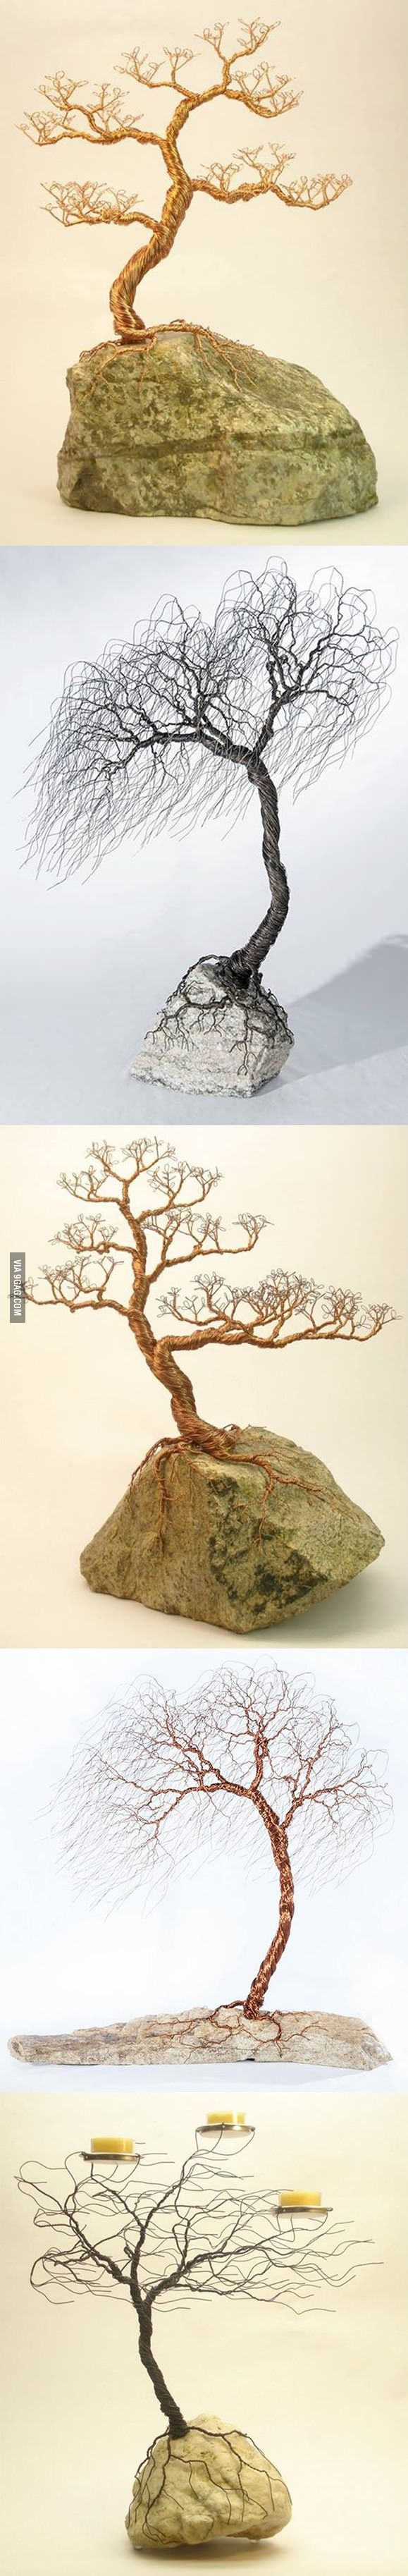 Stiff wire for crafts - My Friend Makes These Wicked Cool Wire Trees